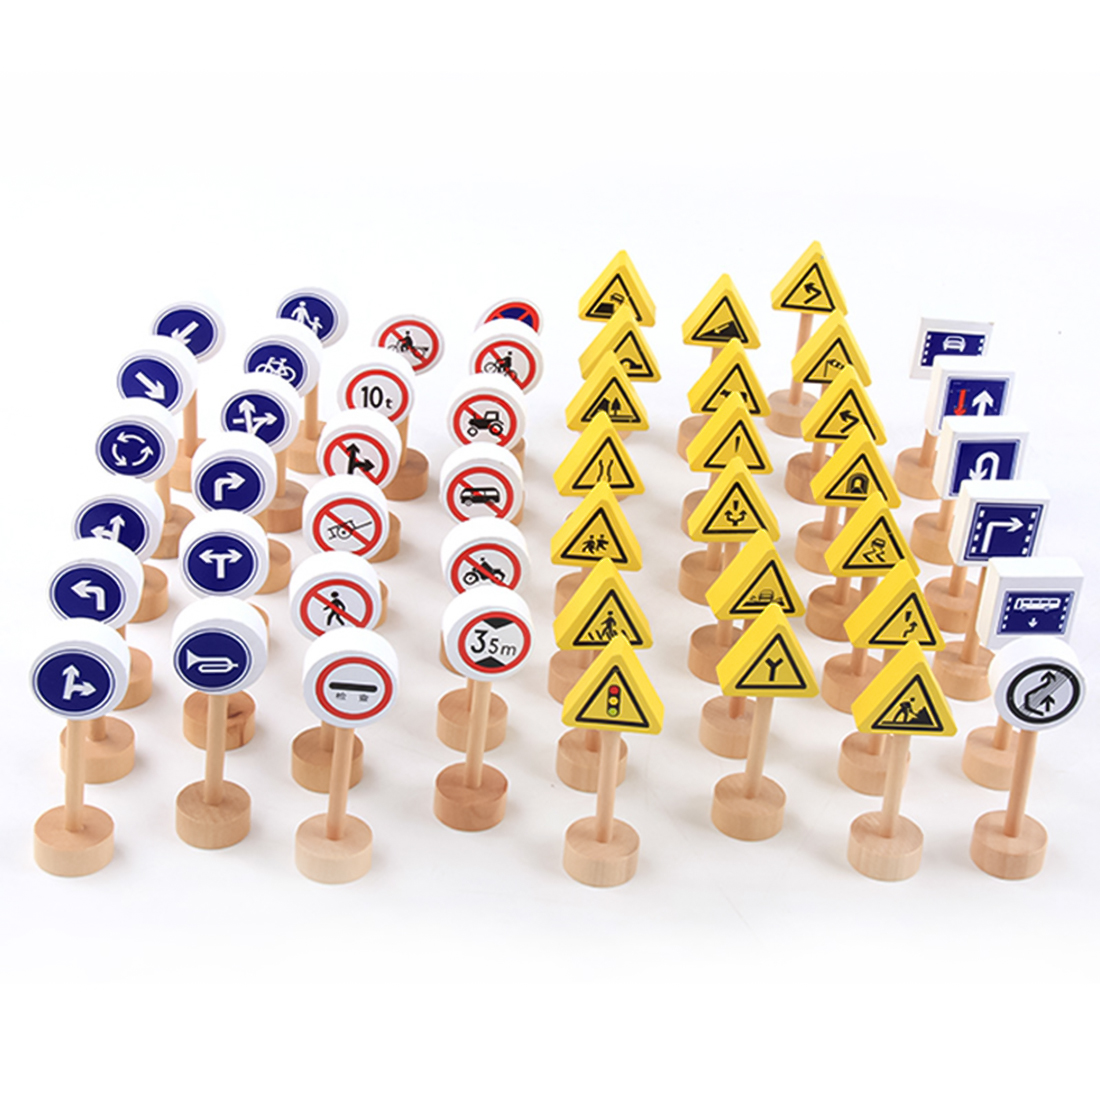 50pcs Double-sided Traffic Sign Building Block Educational Toys For Children Traffic Knowledge Learning Mini Figurines Toy Special Summer Sale